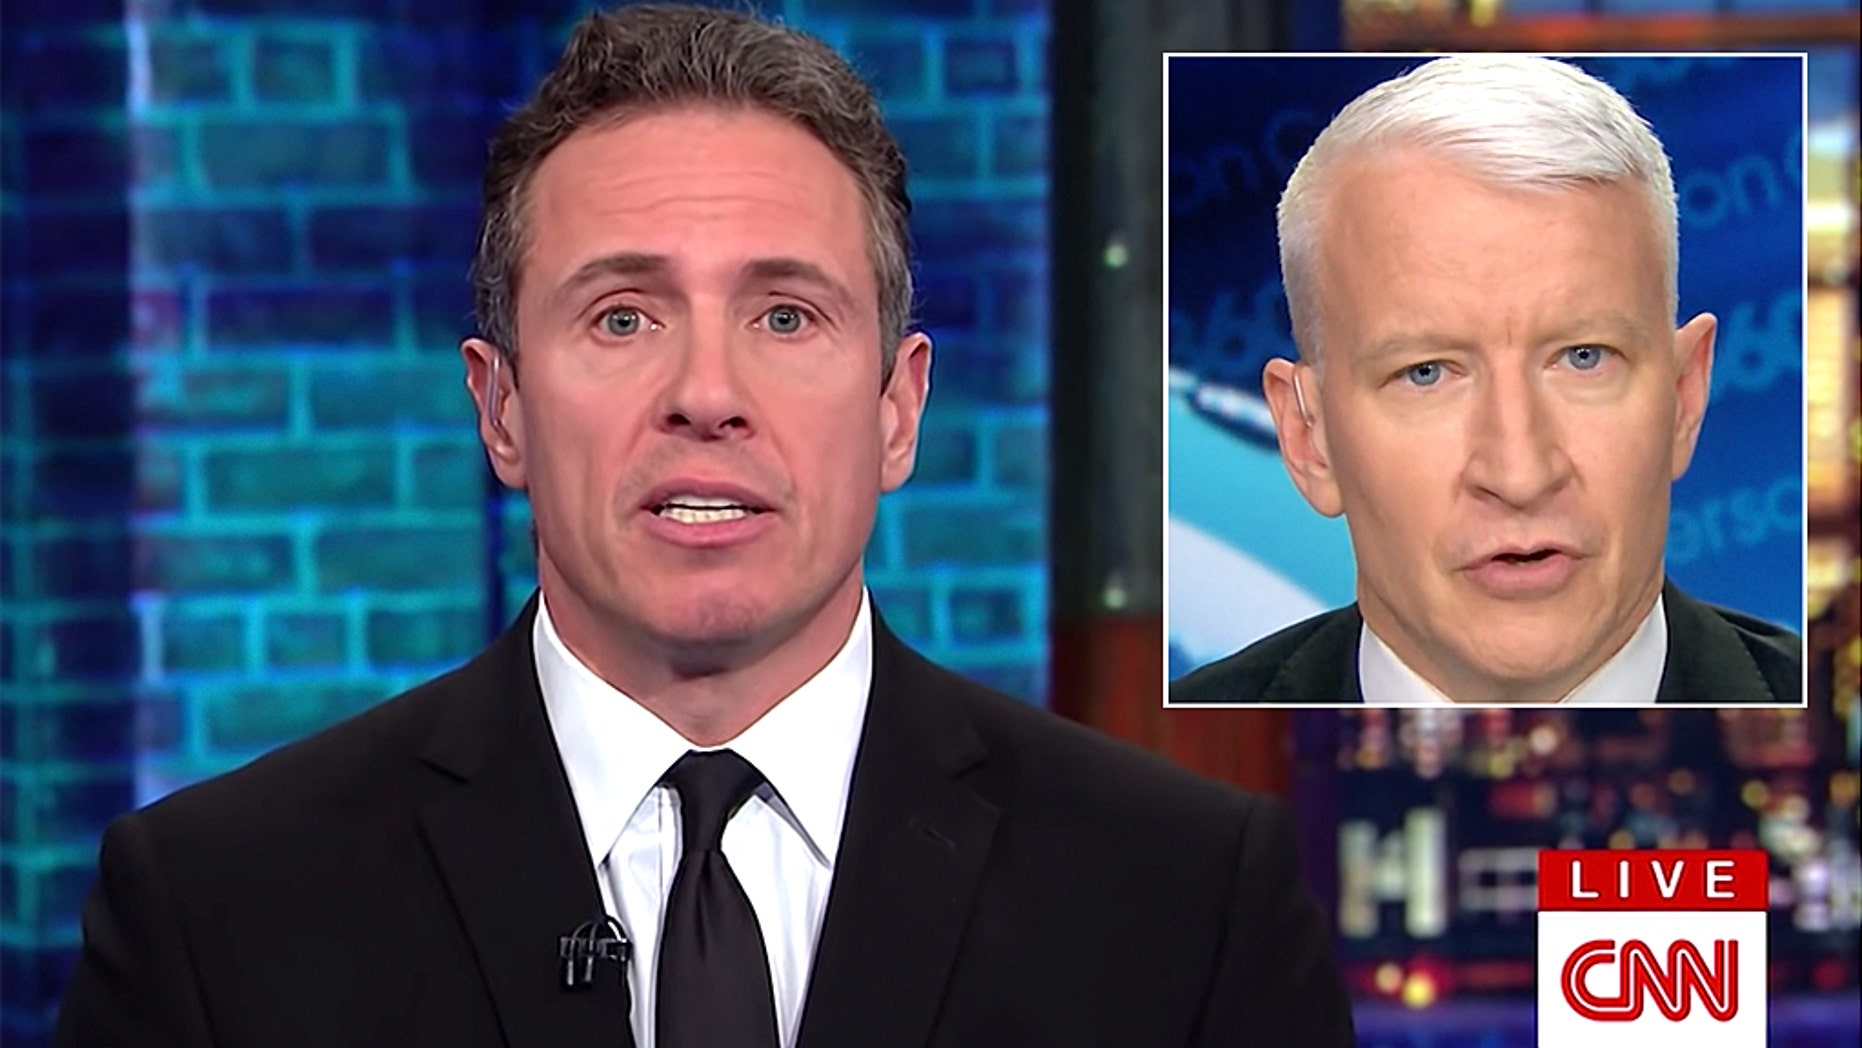 CNN hosts Chris Cuomo and Anderson Cooper offer their option more than typical news anchors, according to media critics.